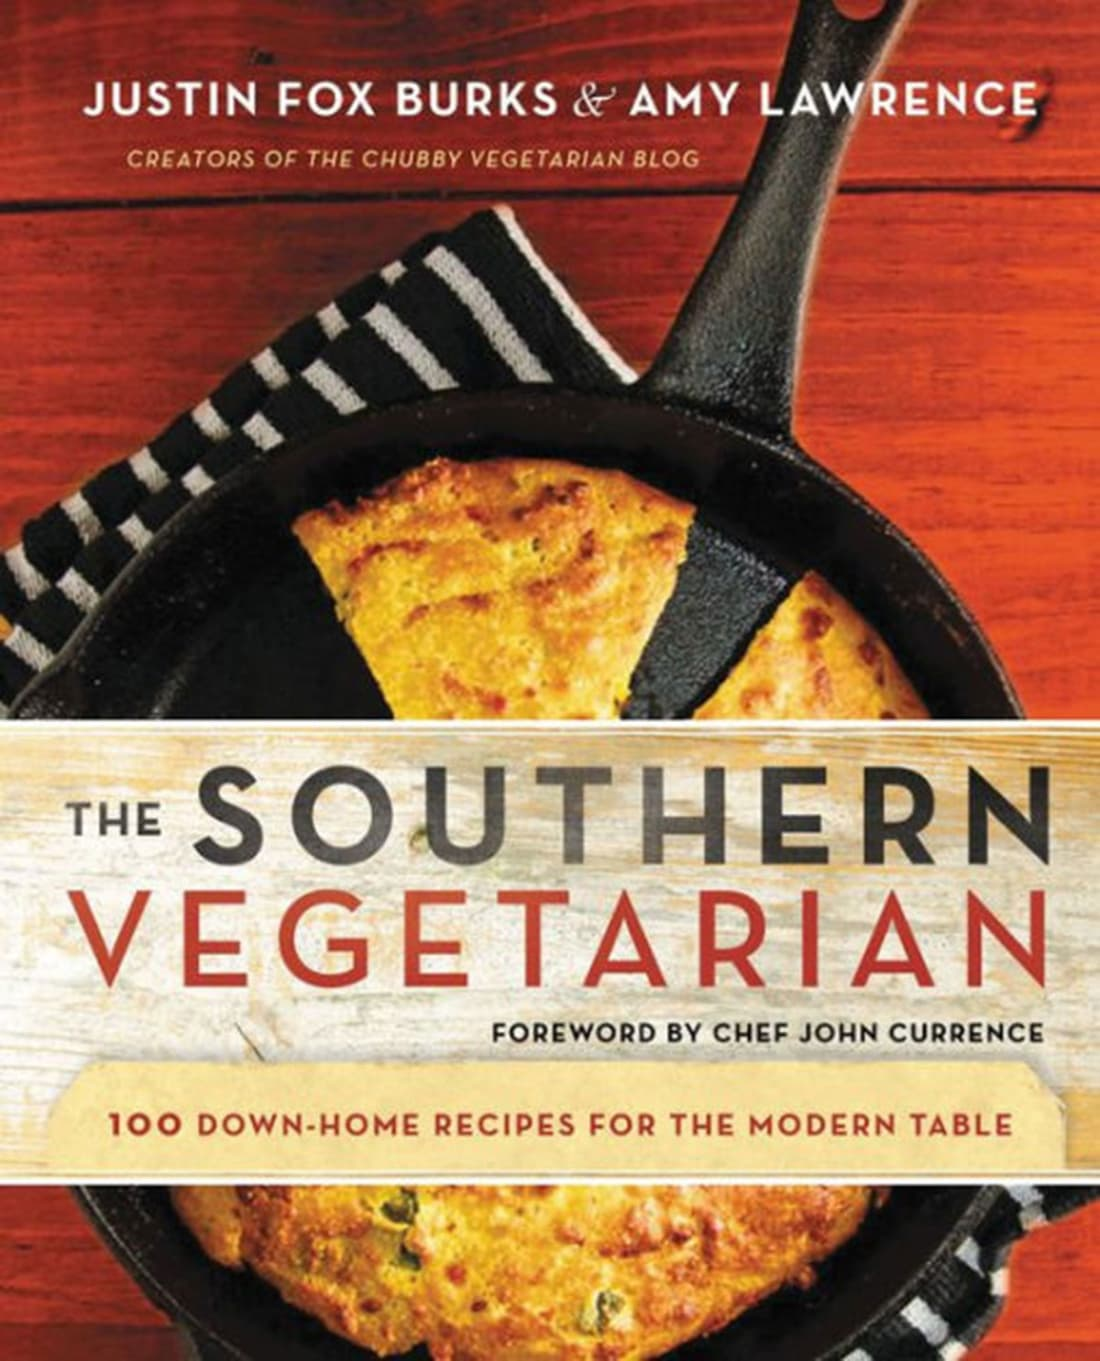 The Southern Vegetarian Cookbook by Justin Fox Burks & Amy Lawrence